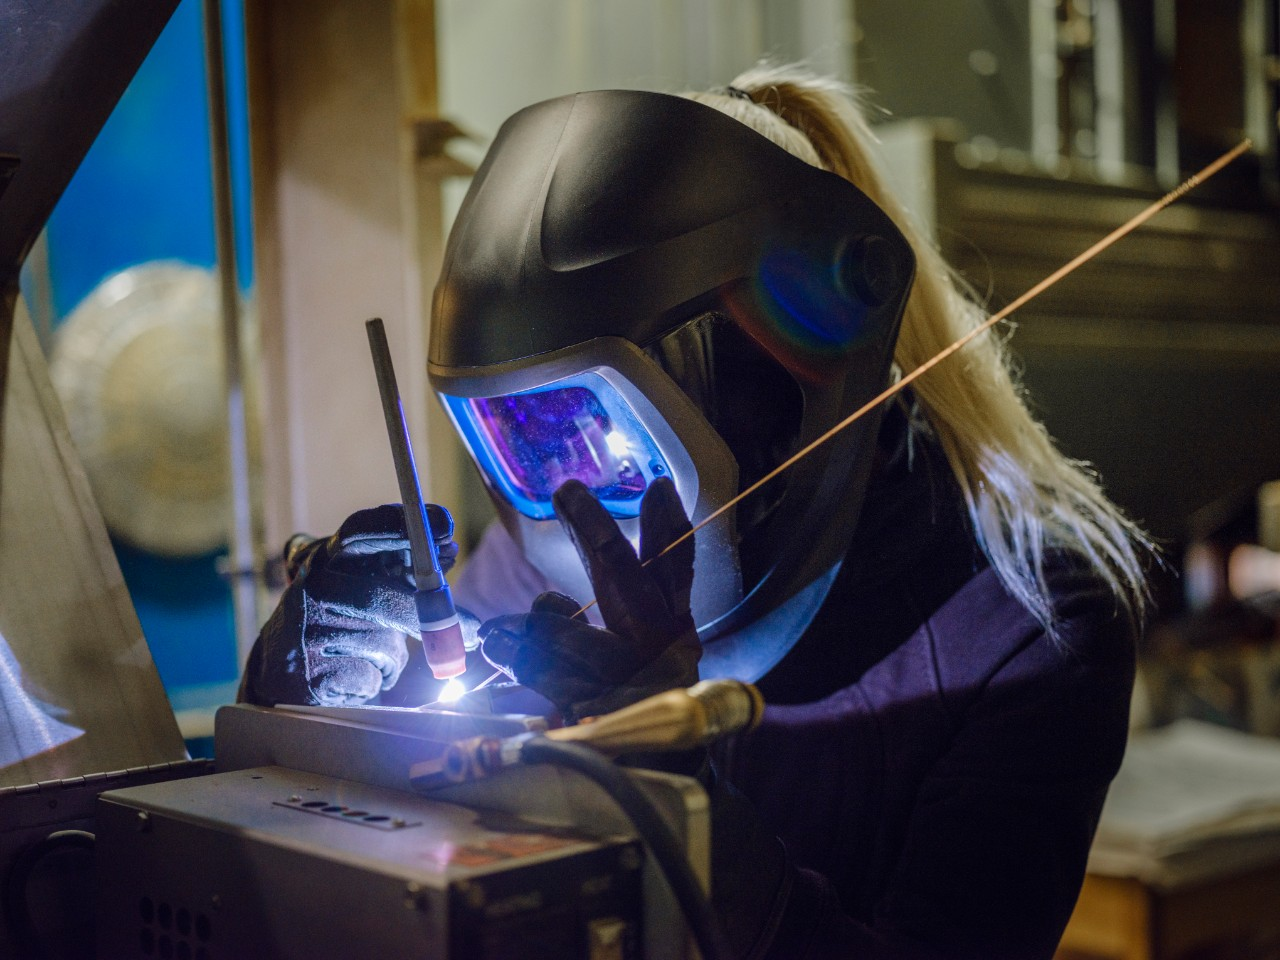 A woman tig welder works in a production facility to repair a piece of equipment.